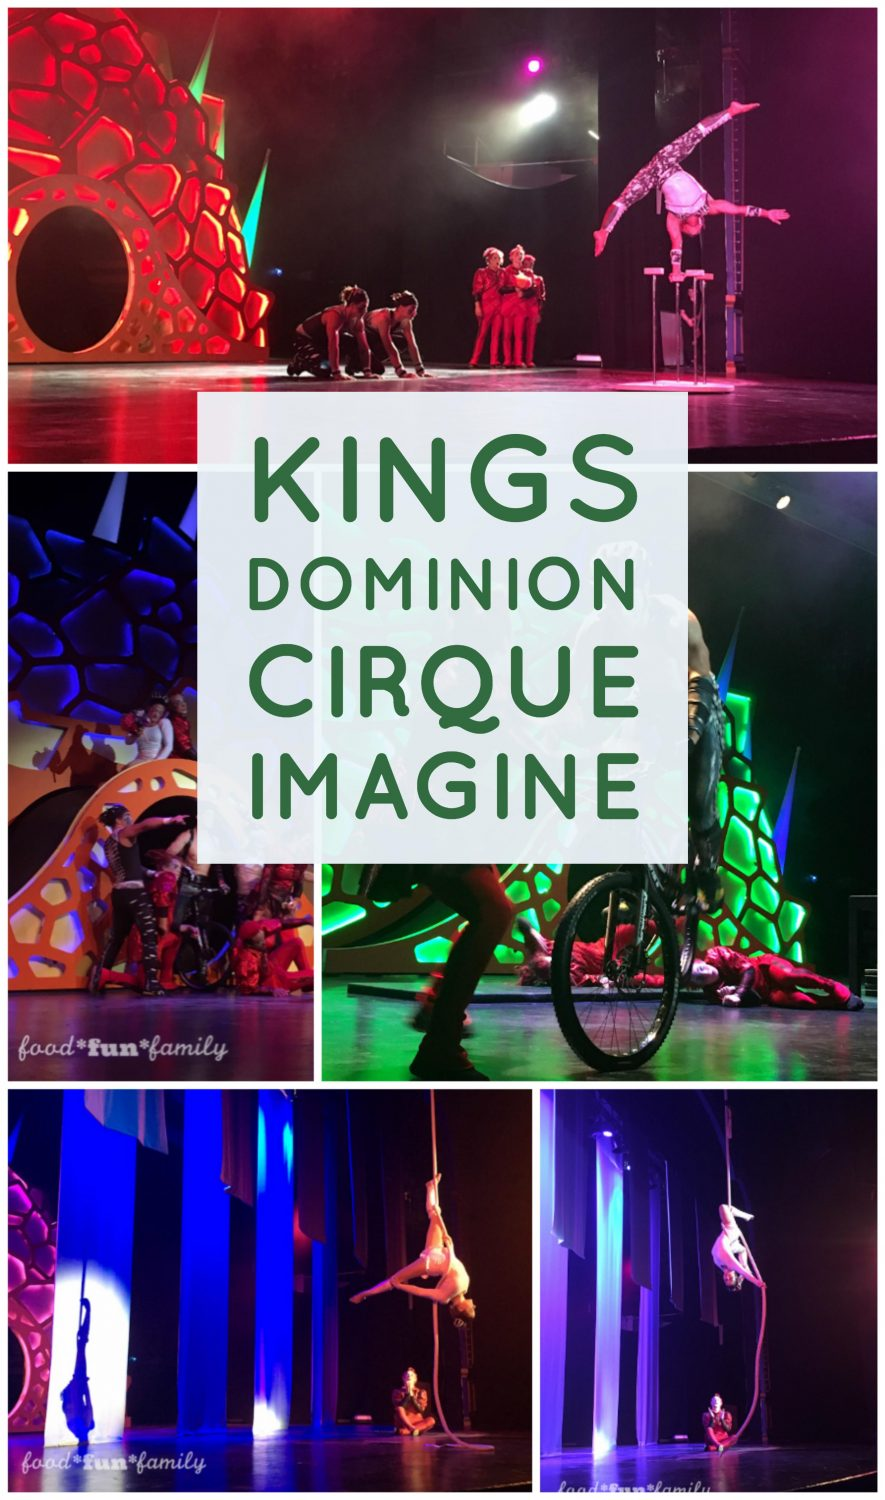 Kings Dominion KidsFest - Cirque Imagine